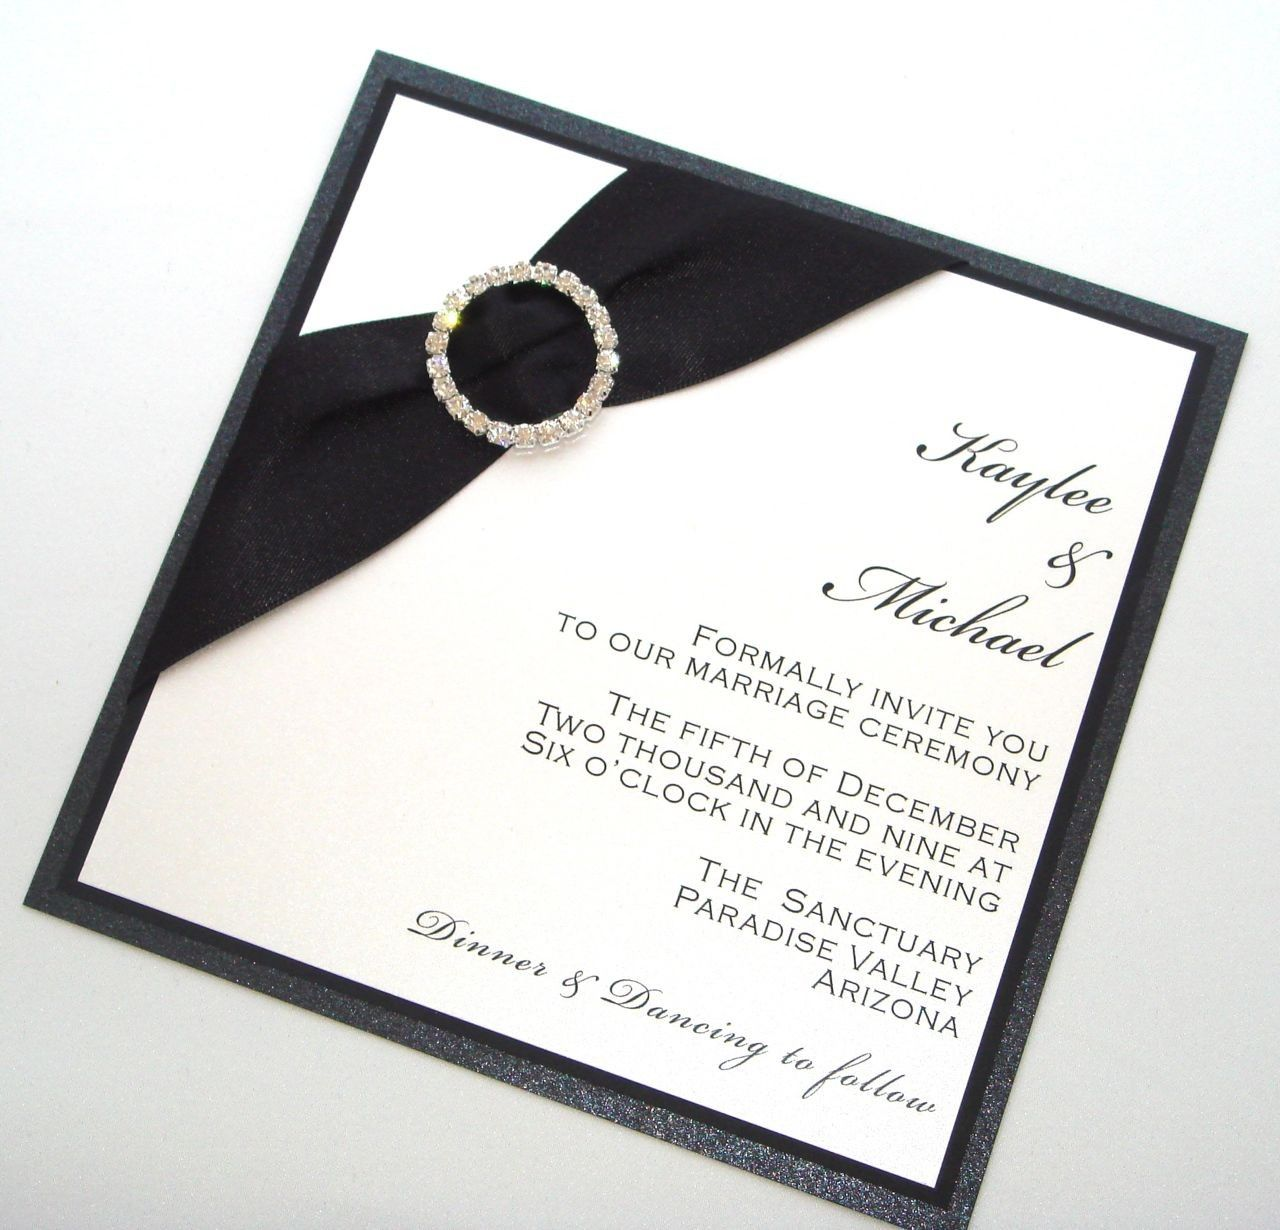 Kaylee Couture Wedding Invitation Sample - Black and White. $8.50, via Etsy.